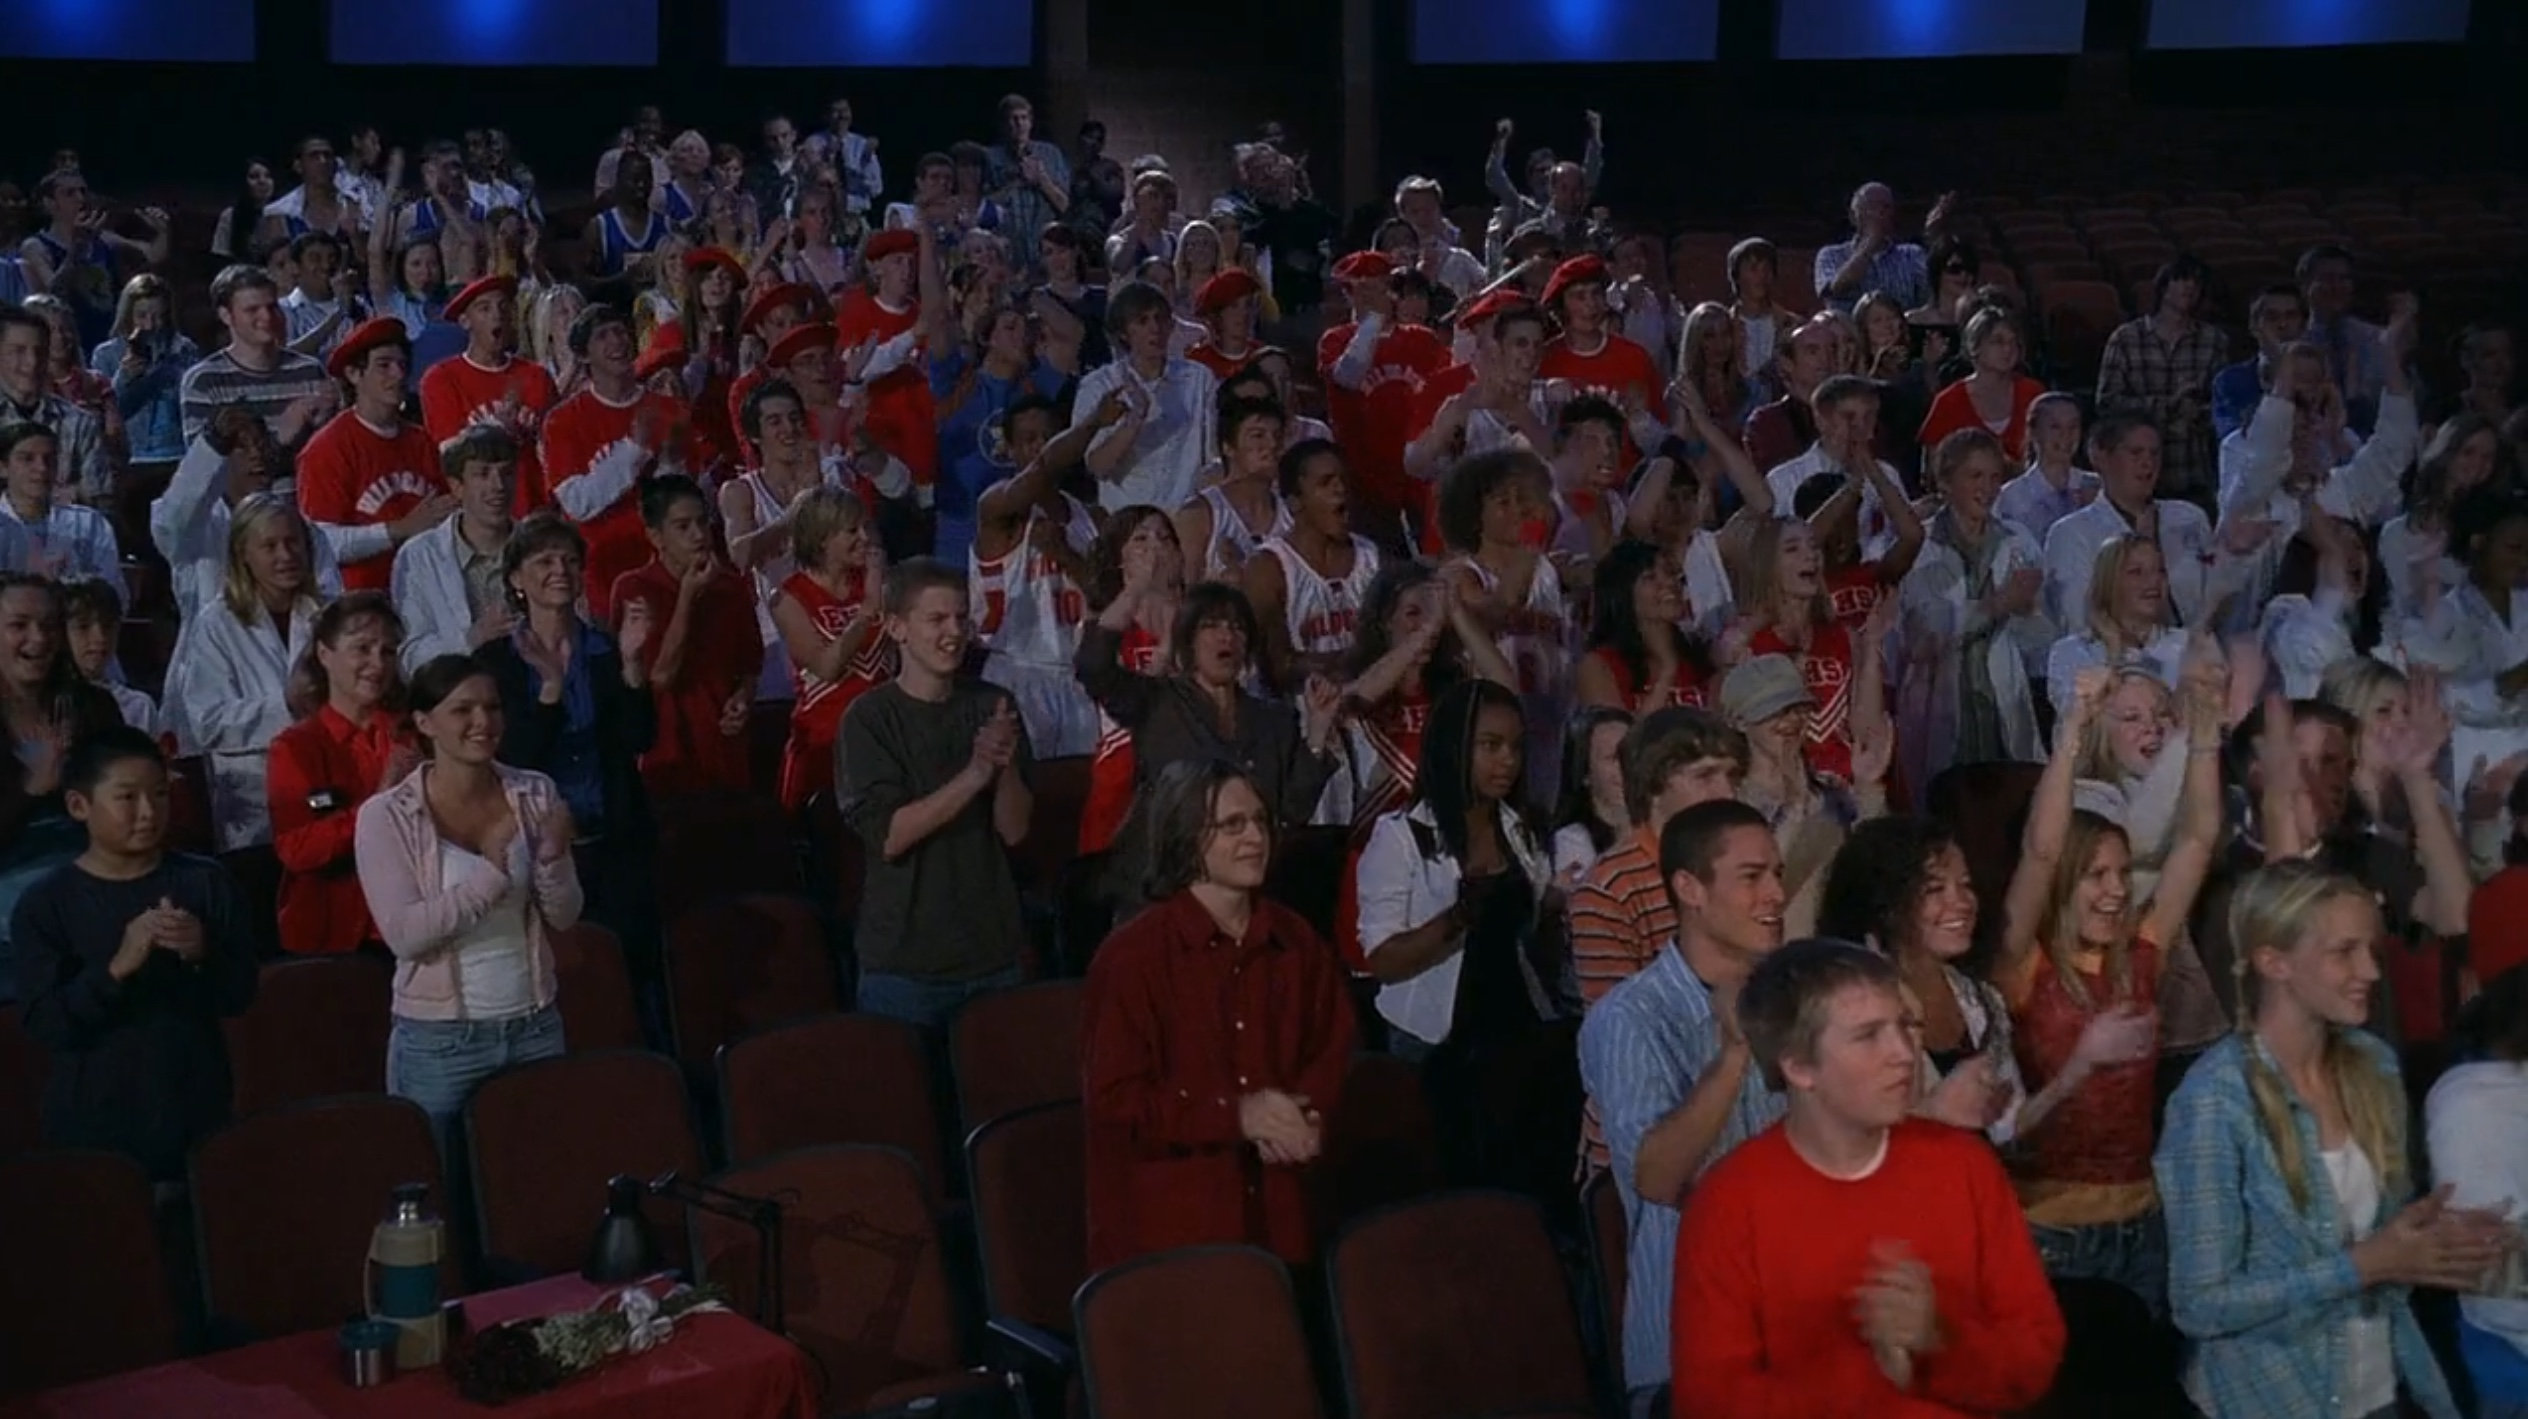 crowd at rehearsal, standing ovation